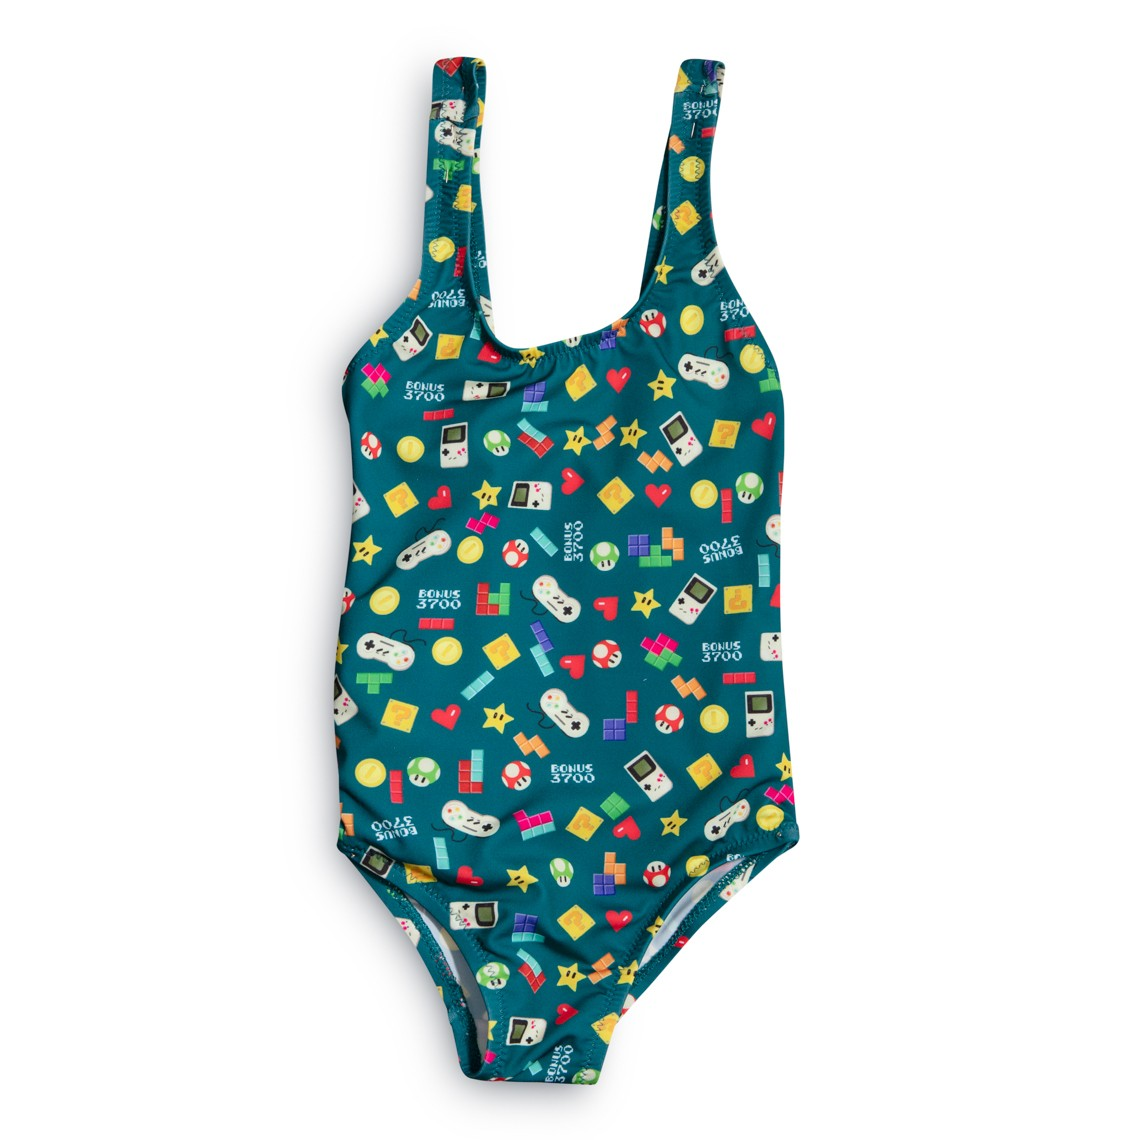 Girl Swimsuit Green video games 2 to 6 years